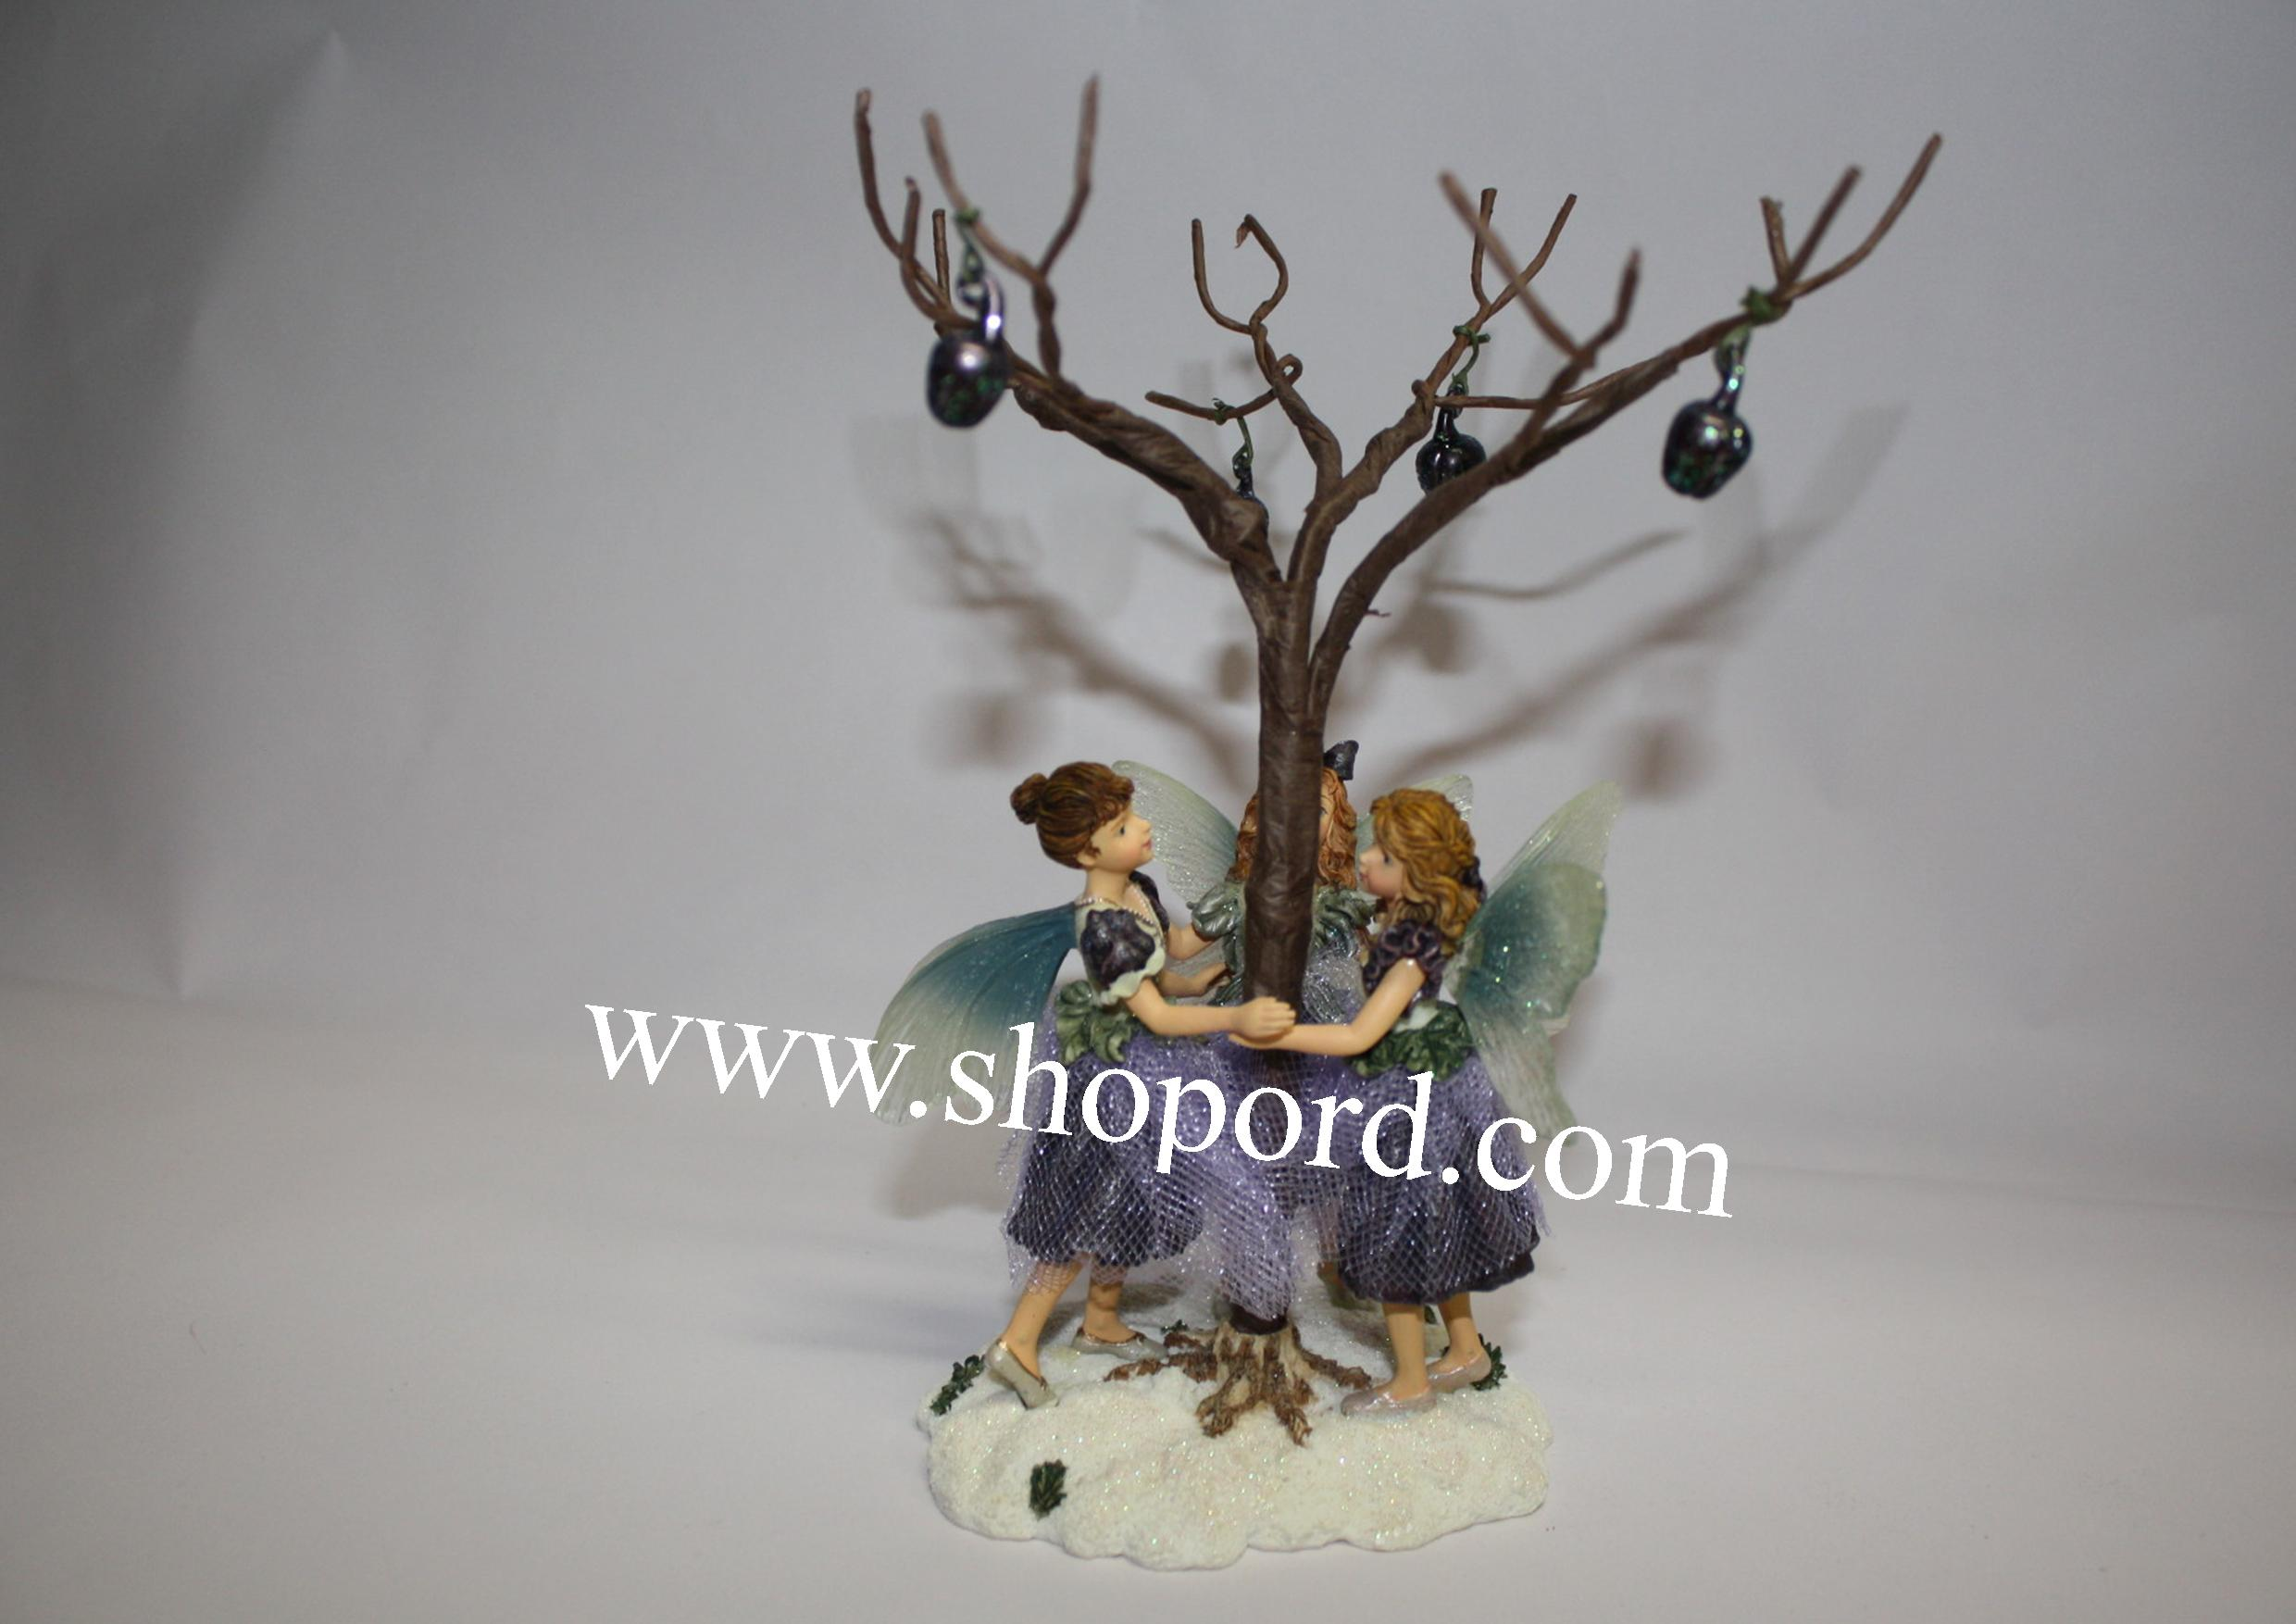 Boyds The Wee Folkstone - Twila, Margot & Giselle (Dance of the Sugar Plum Fairies) #36010